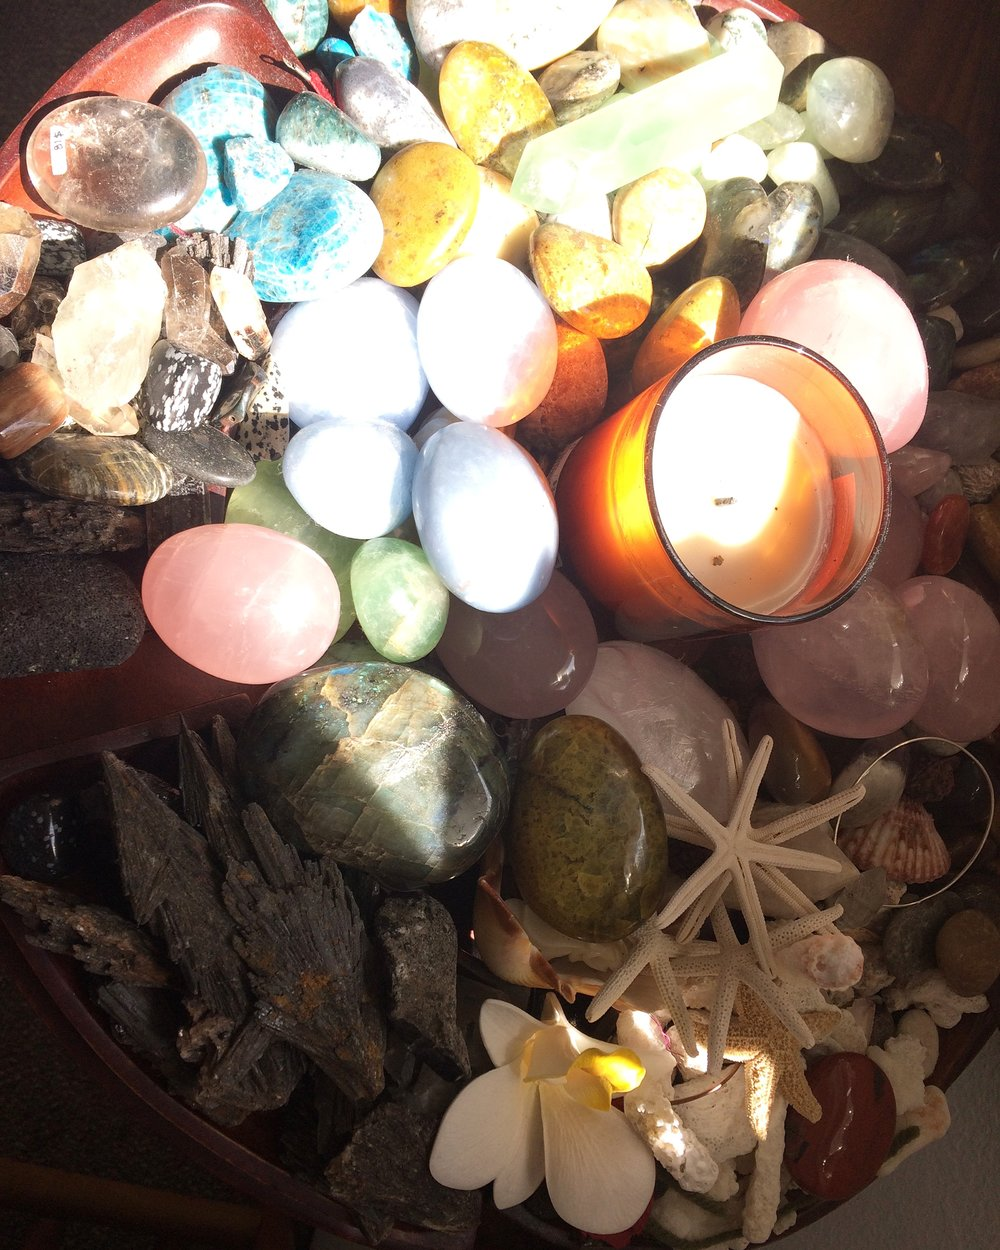 Healing stones catching some sun time...recharge